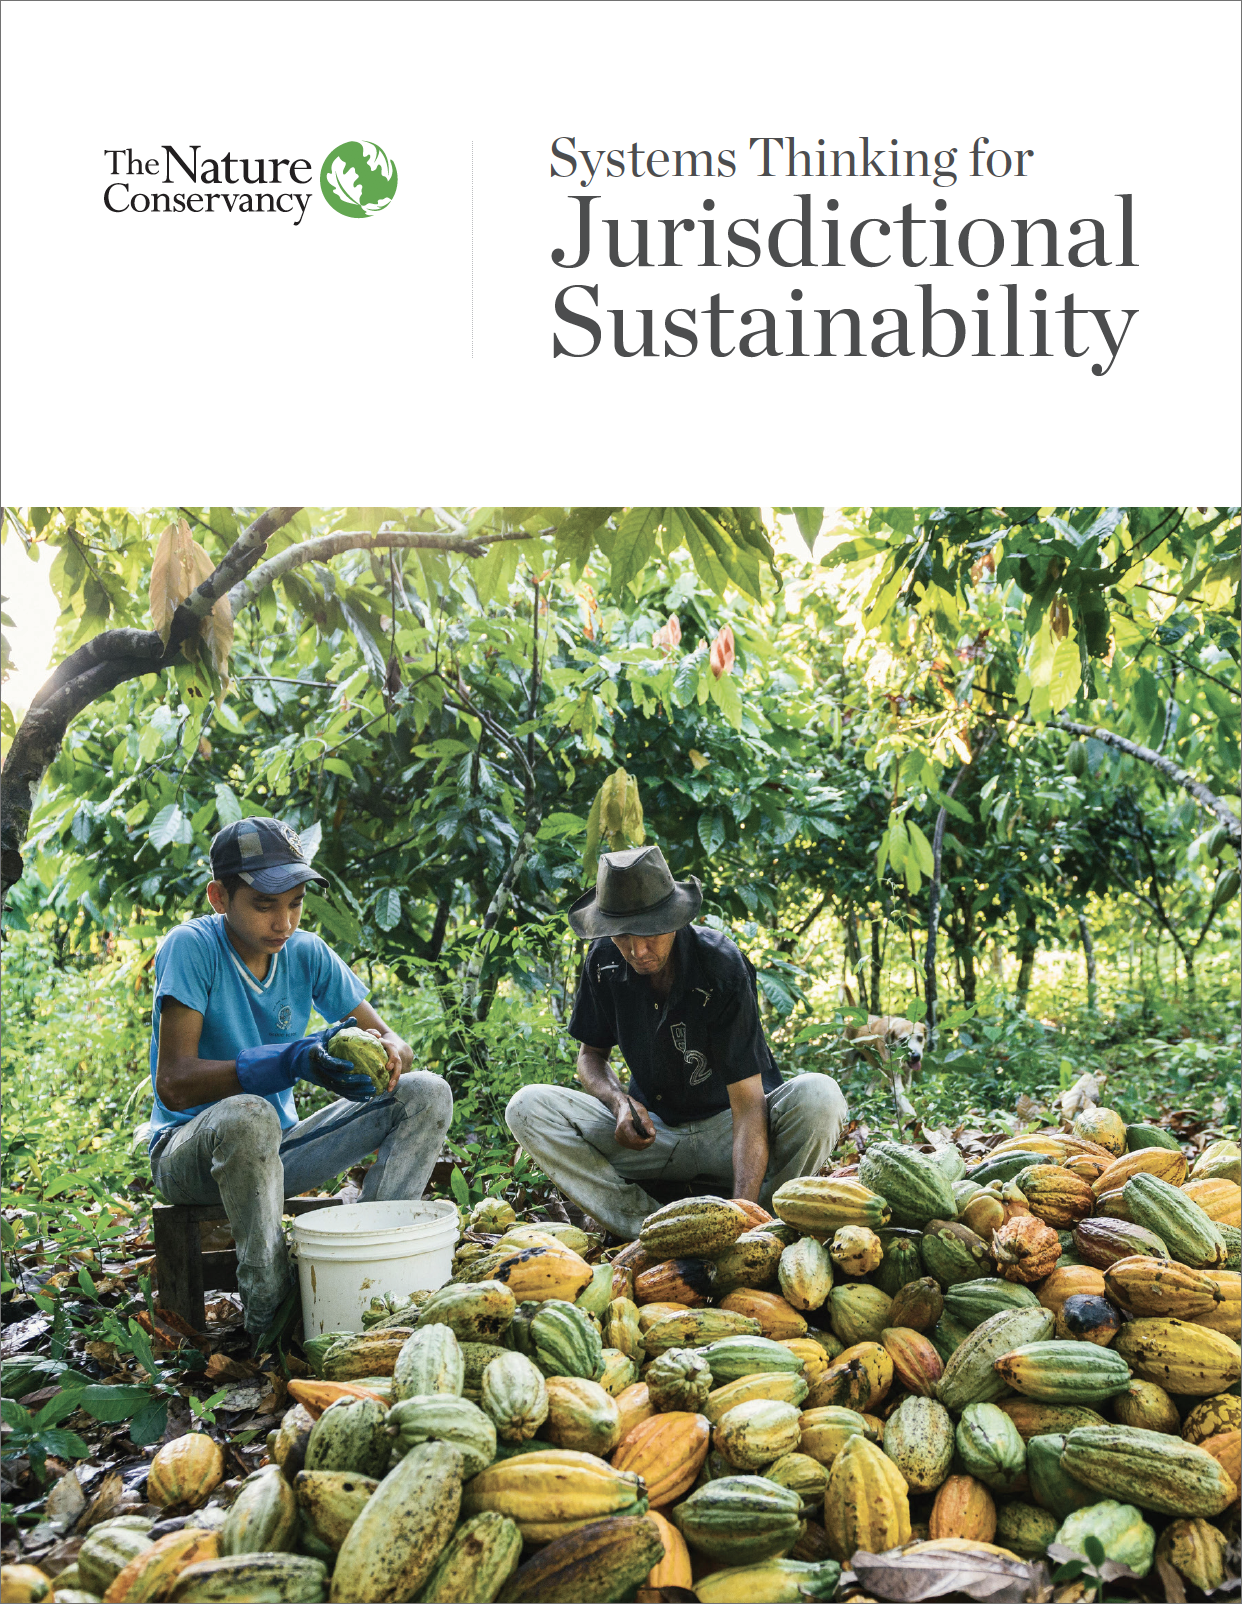 Systems Thinking for Jurisdictional Sustainability